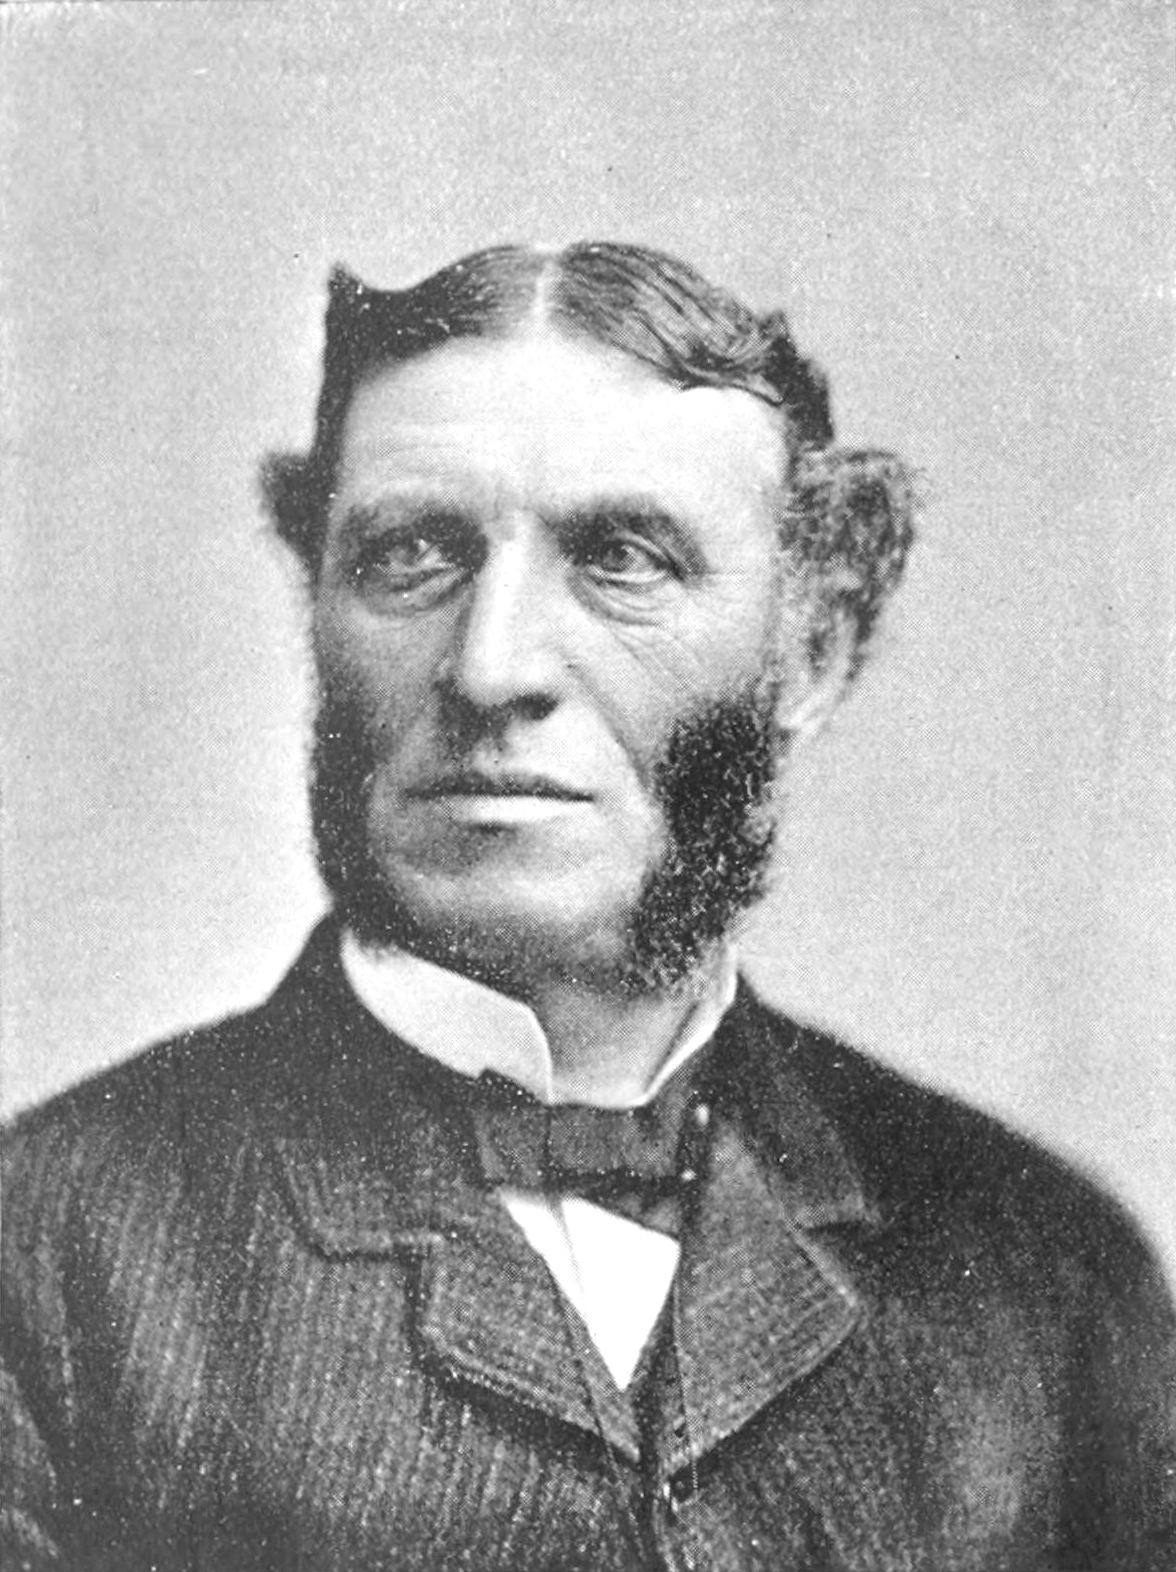 matthew arnold Works by this author published before january 1, 1923 are in the public domain worldwide because the author died at least 100 years ago translations or editions published later may be copyrighted.